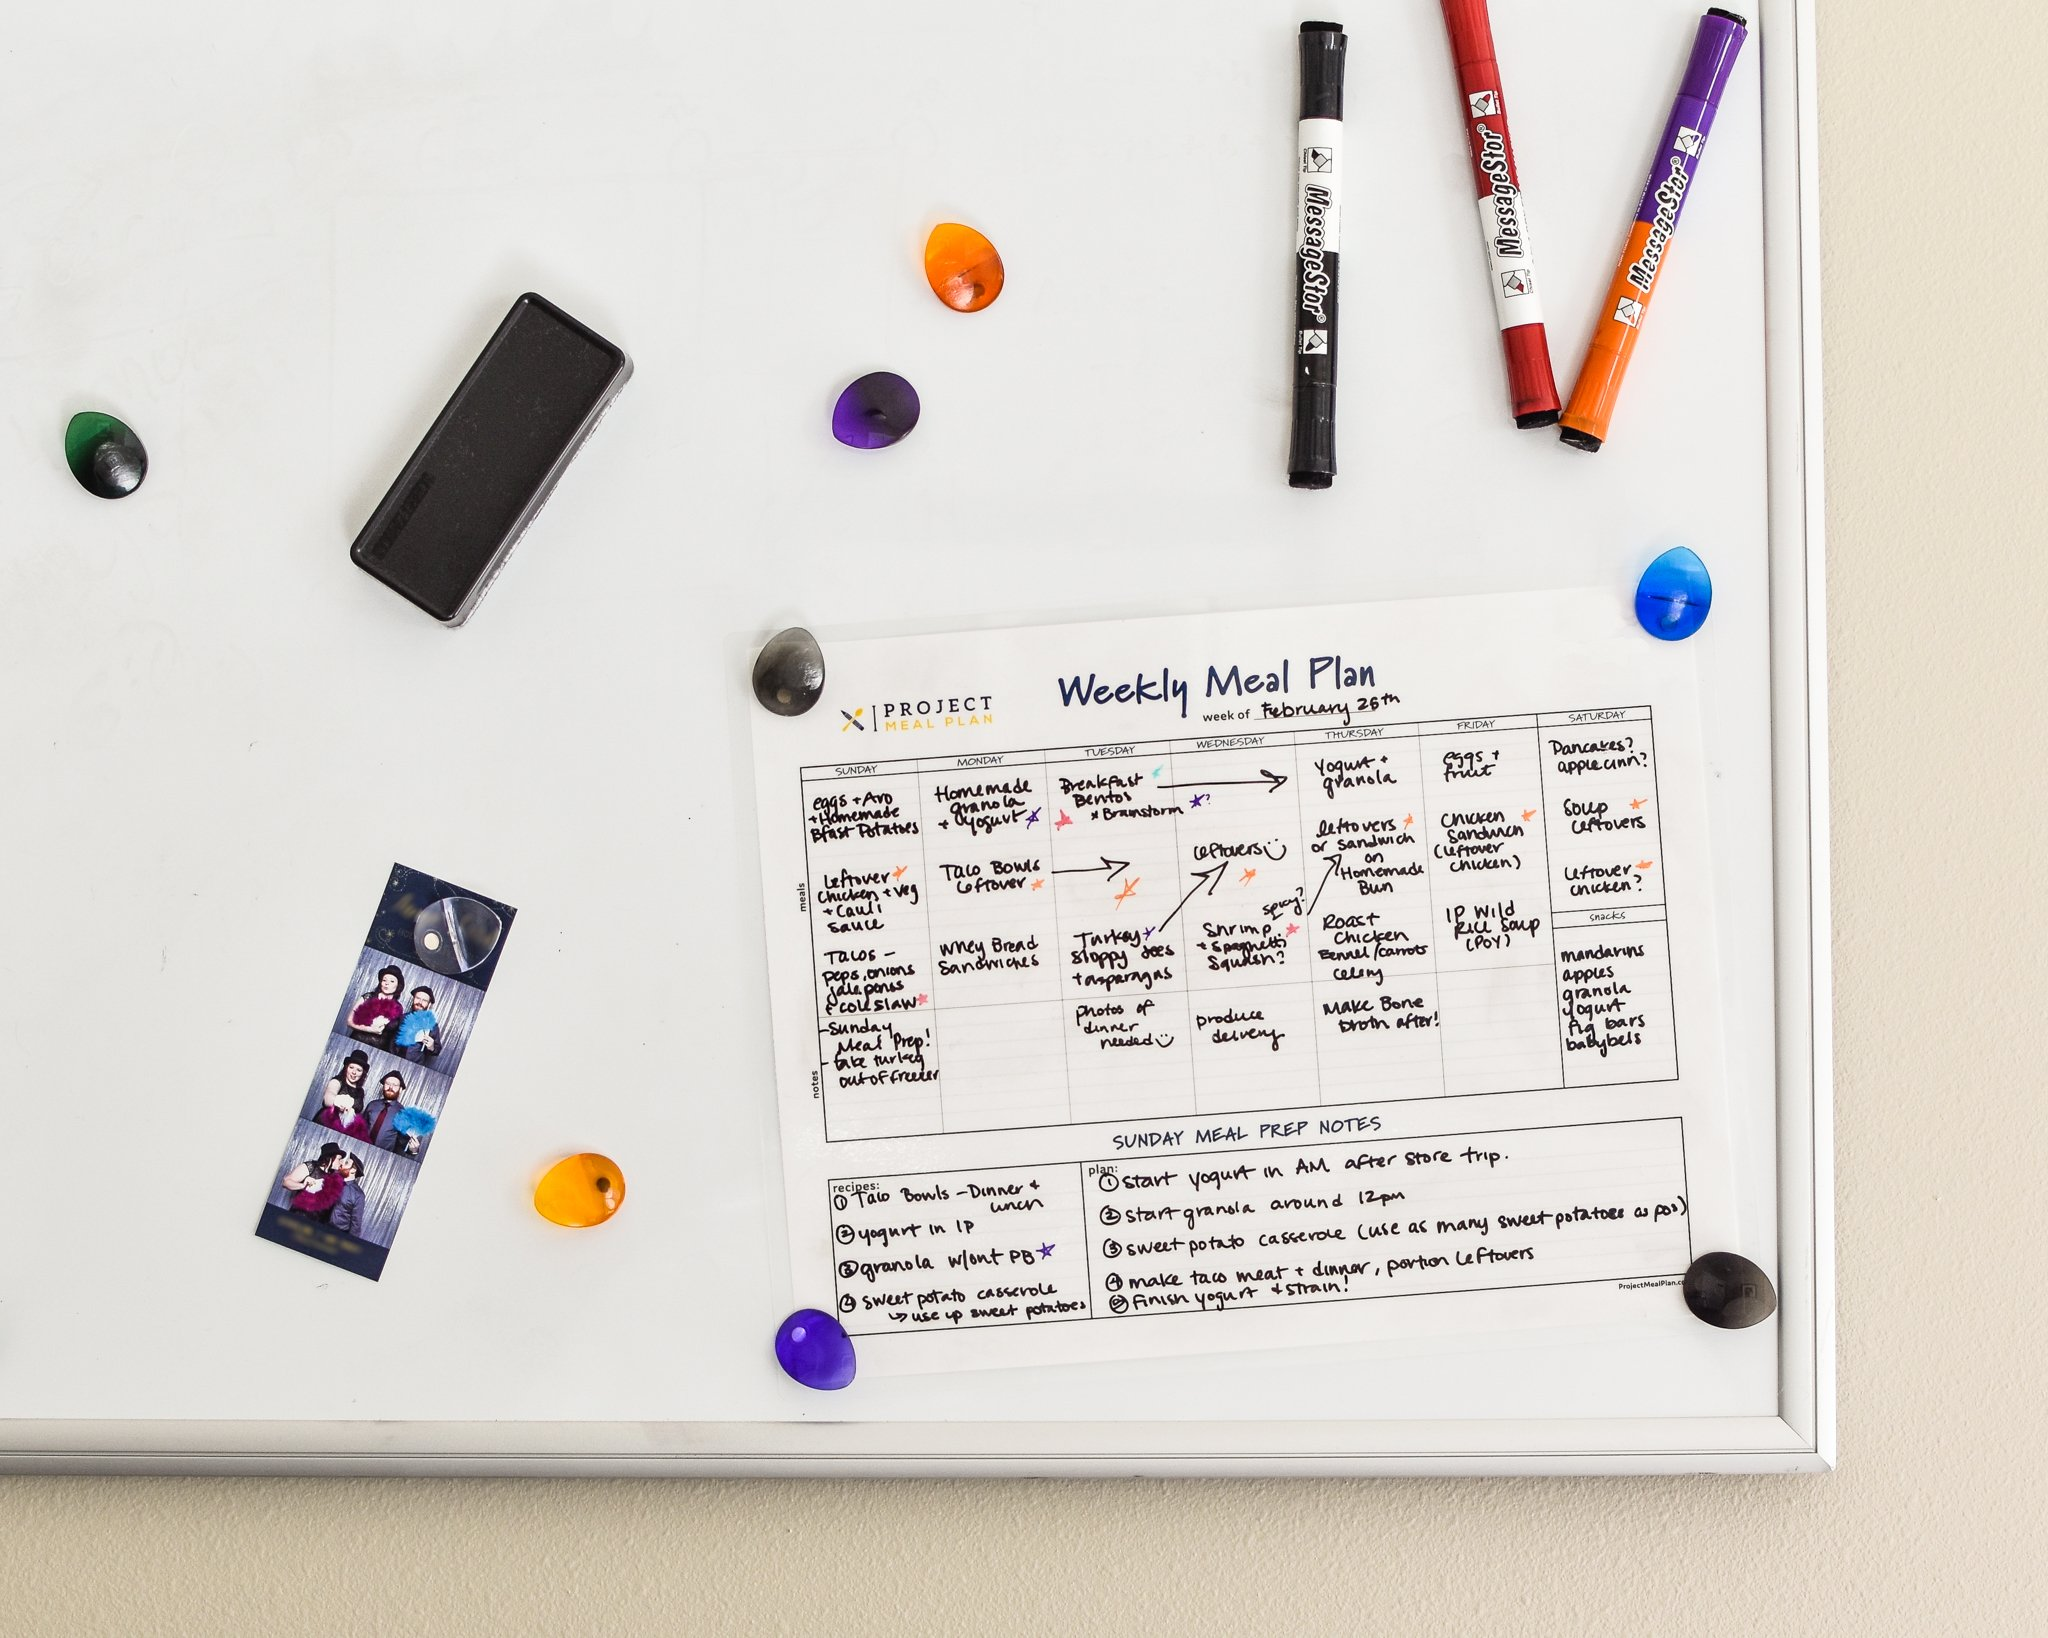 a weekly meal planner template attached to a white board with magnets